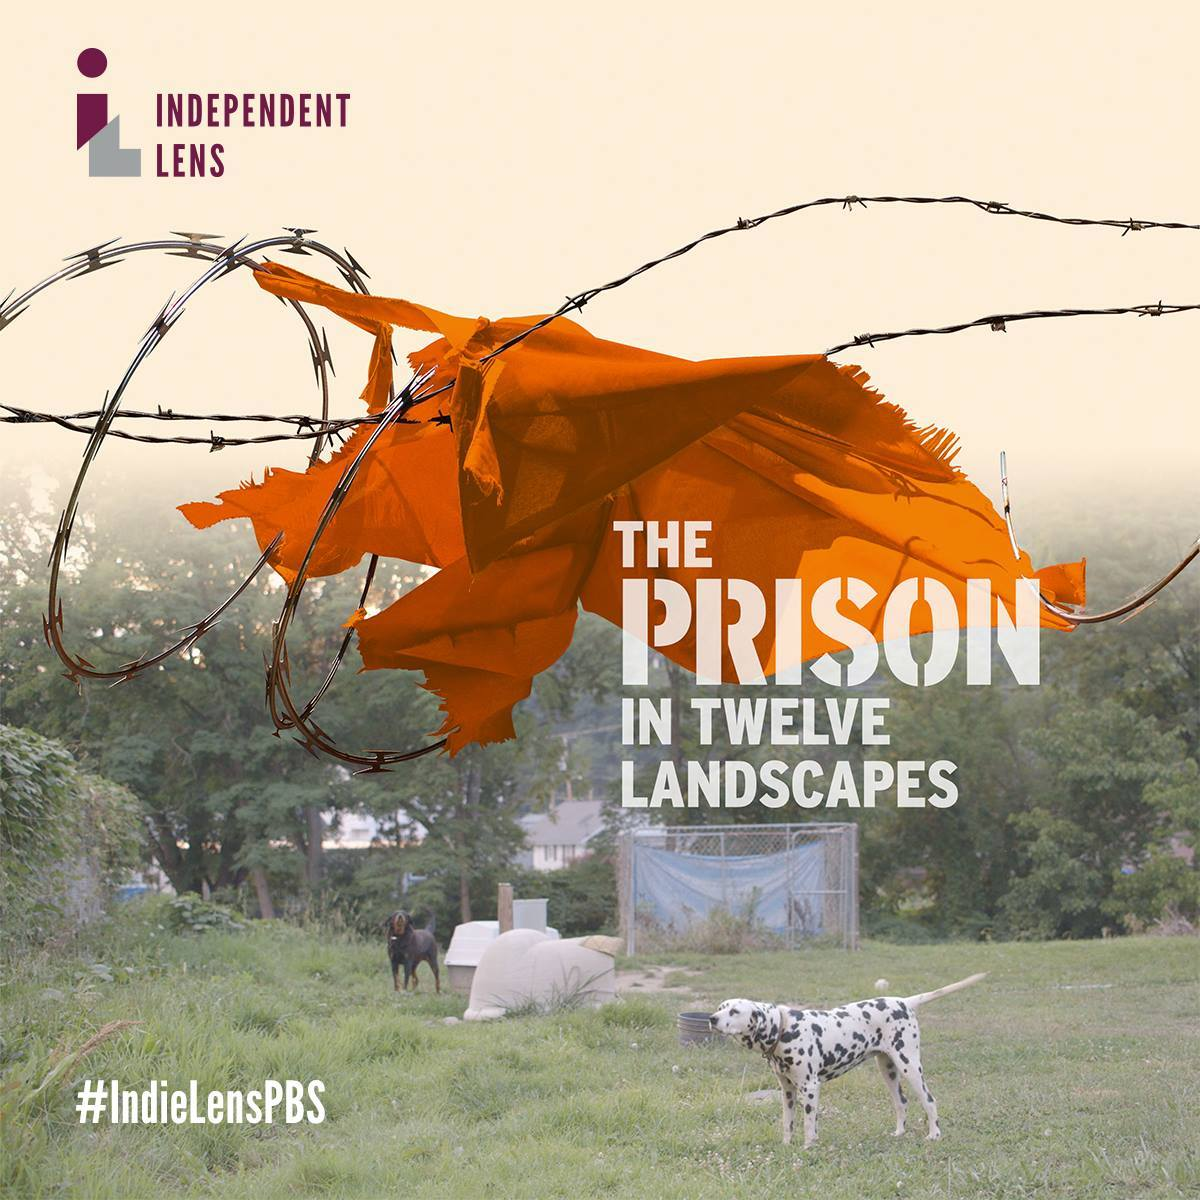 A poster for the new PBS documentary, The Prison In Twelve Landscapes.